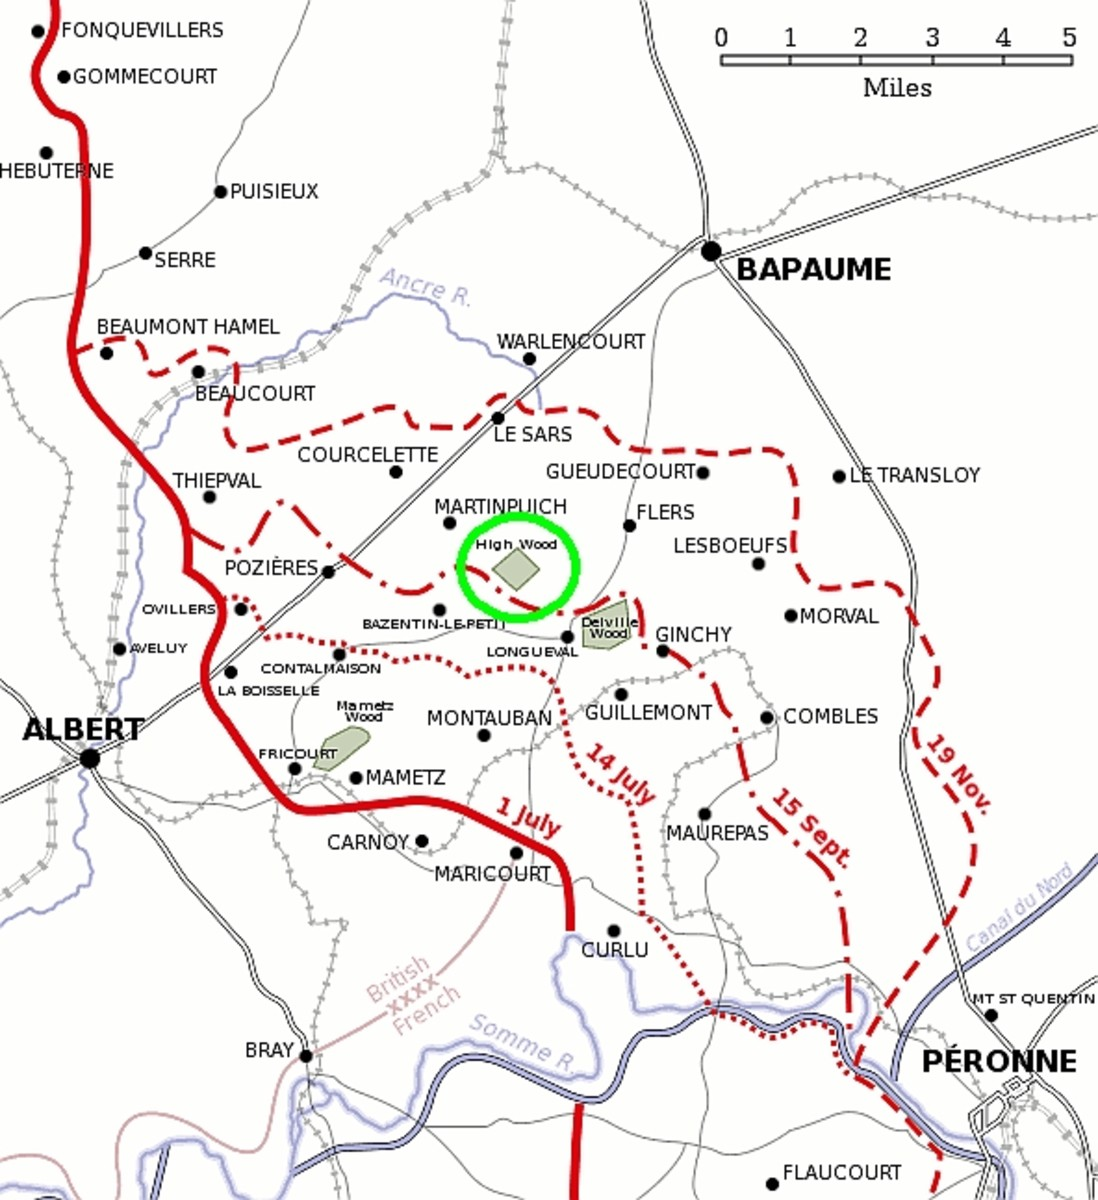 World War I: Map of Somme battlefield, 1916, showing High Wood circled in green.